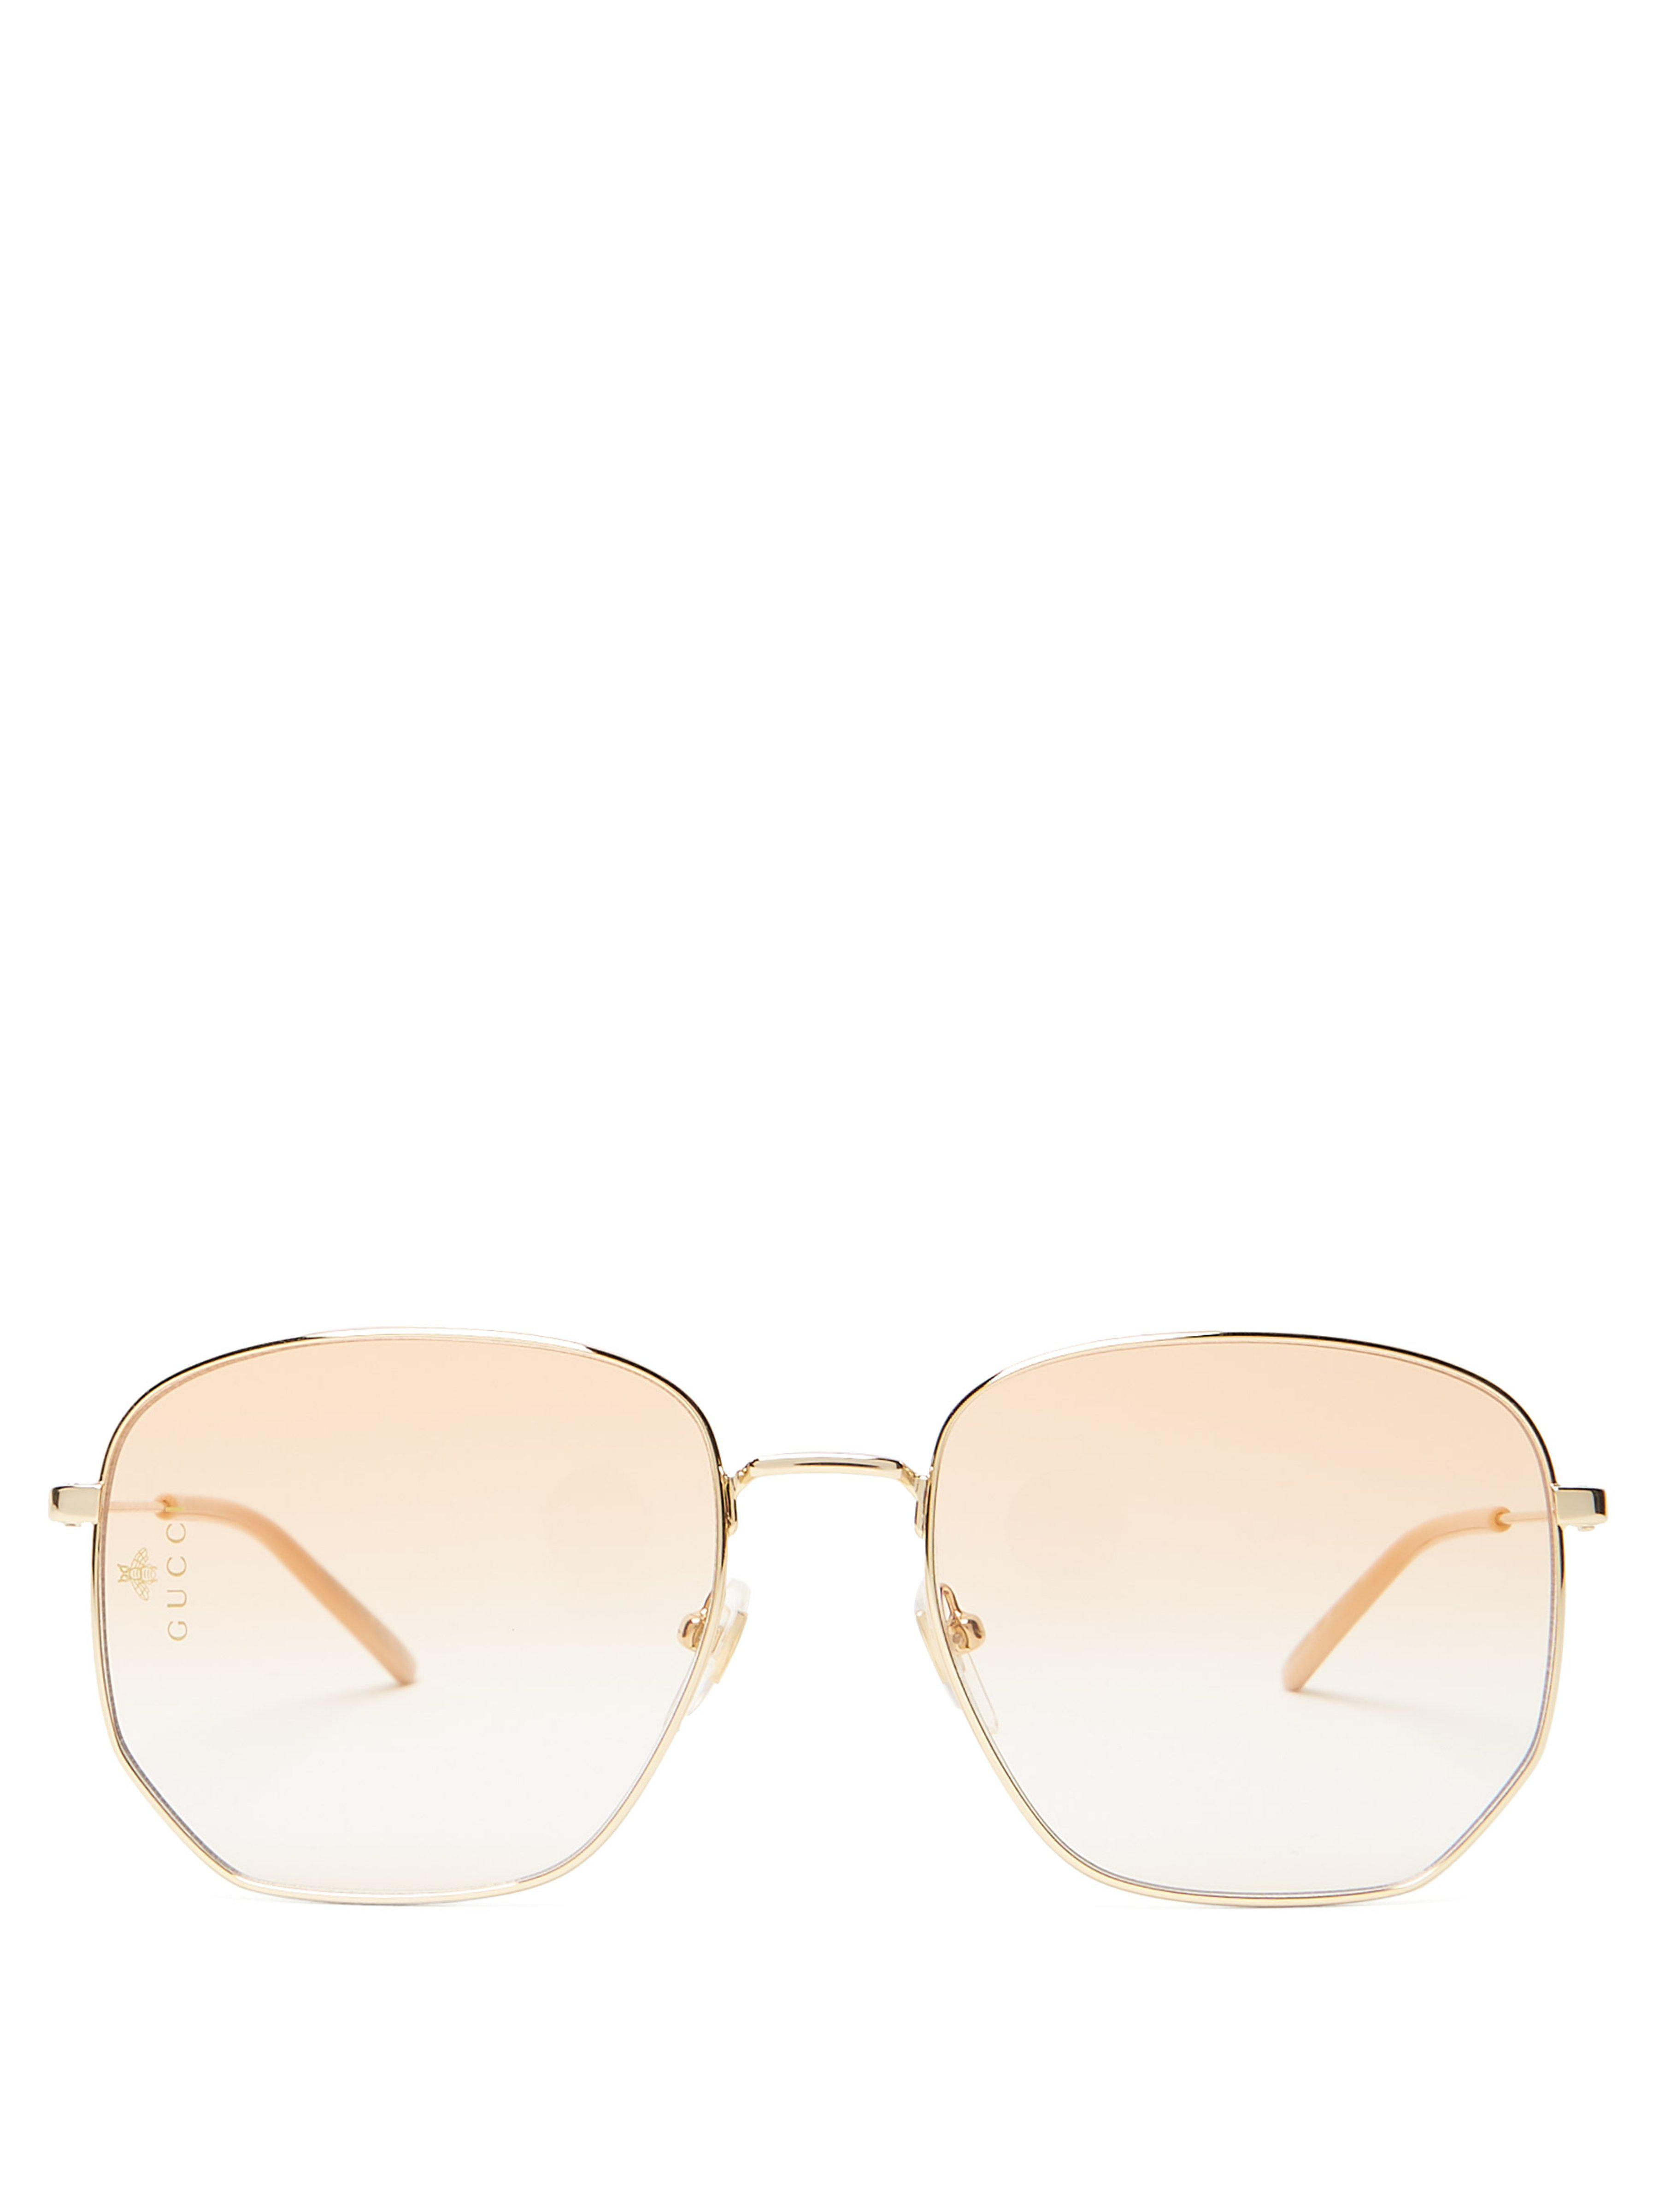 062c7234bed Gucci Square Frame Metal Glasses in Metallic for Men - Lyst